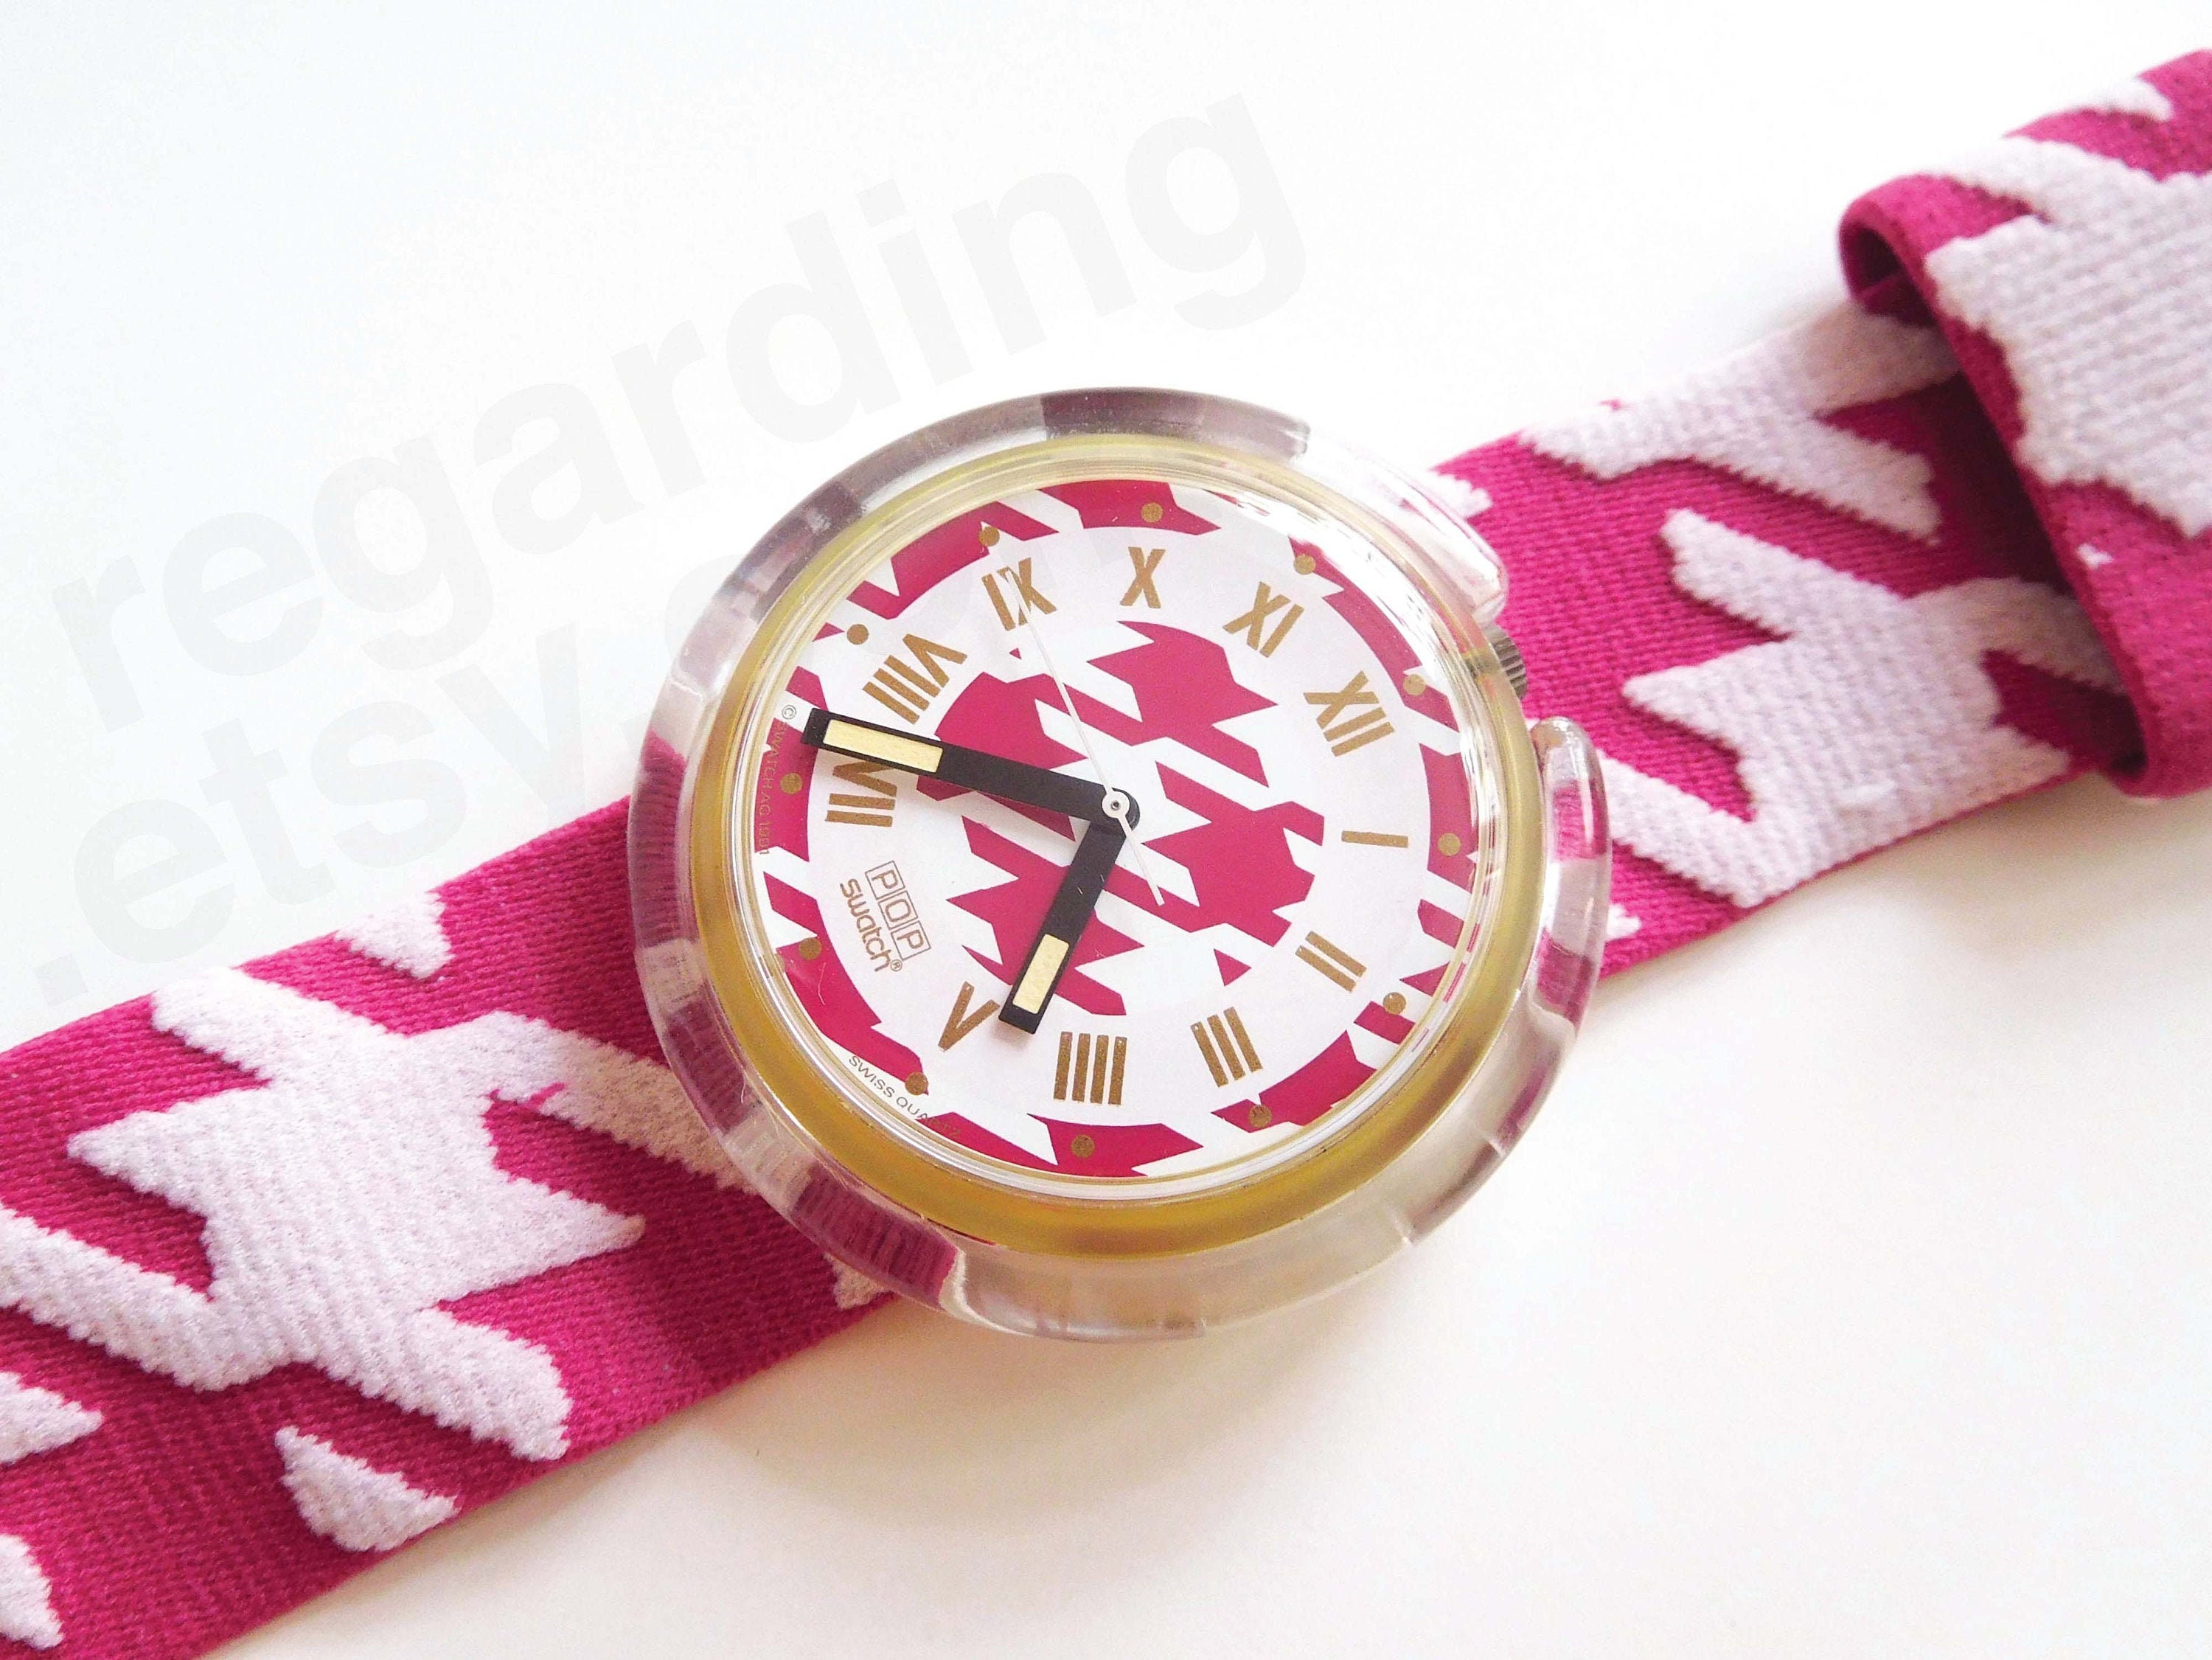 Pwk164 Mlle 39mm Pop Swatch Watch 1990s Pink And Etsy